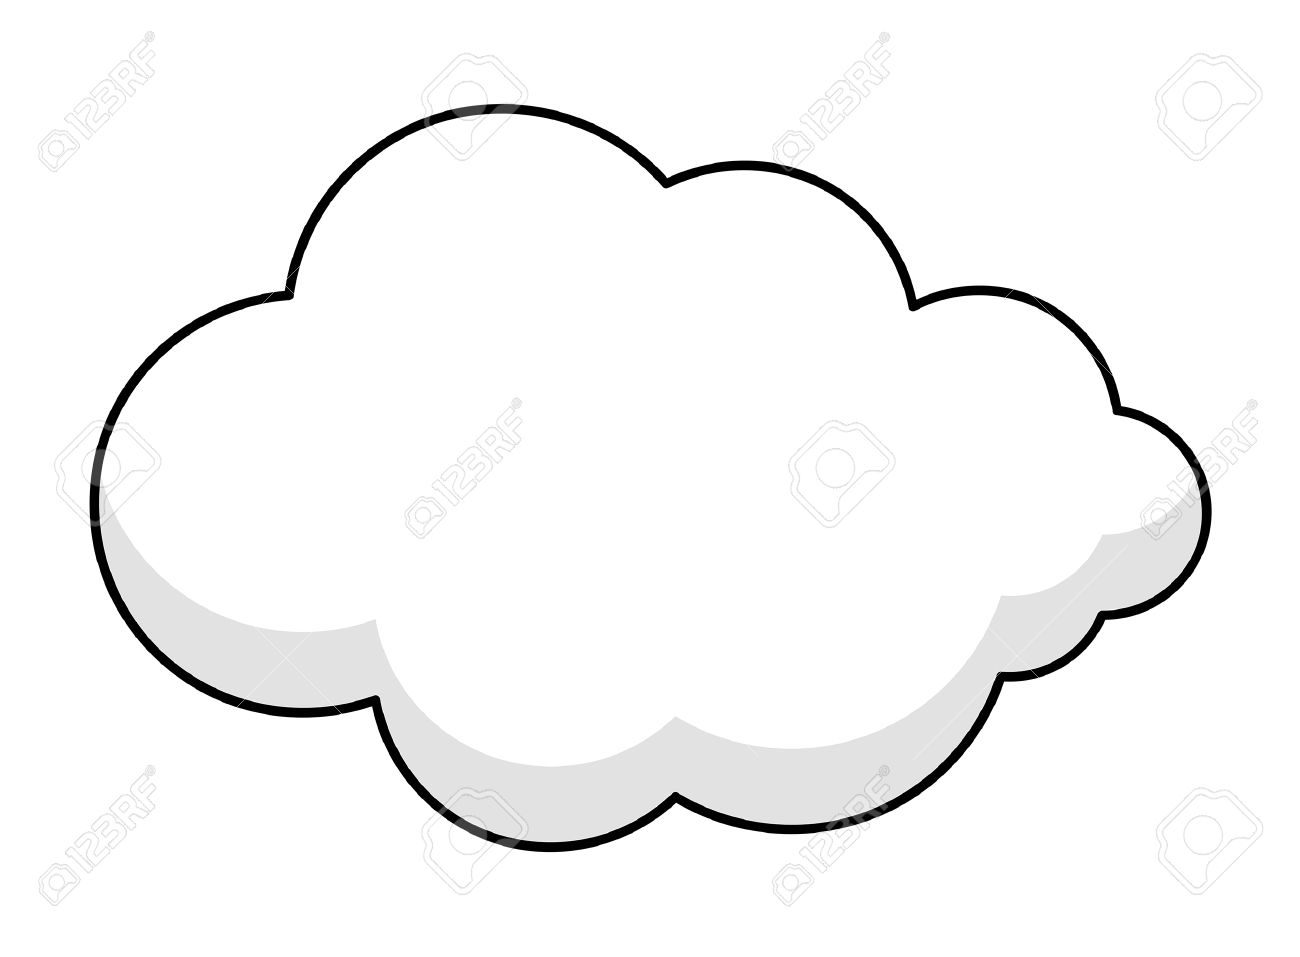 Fluffy Clouds Clipart